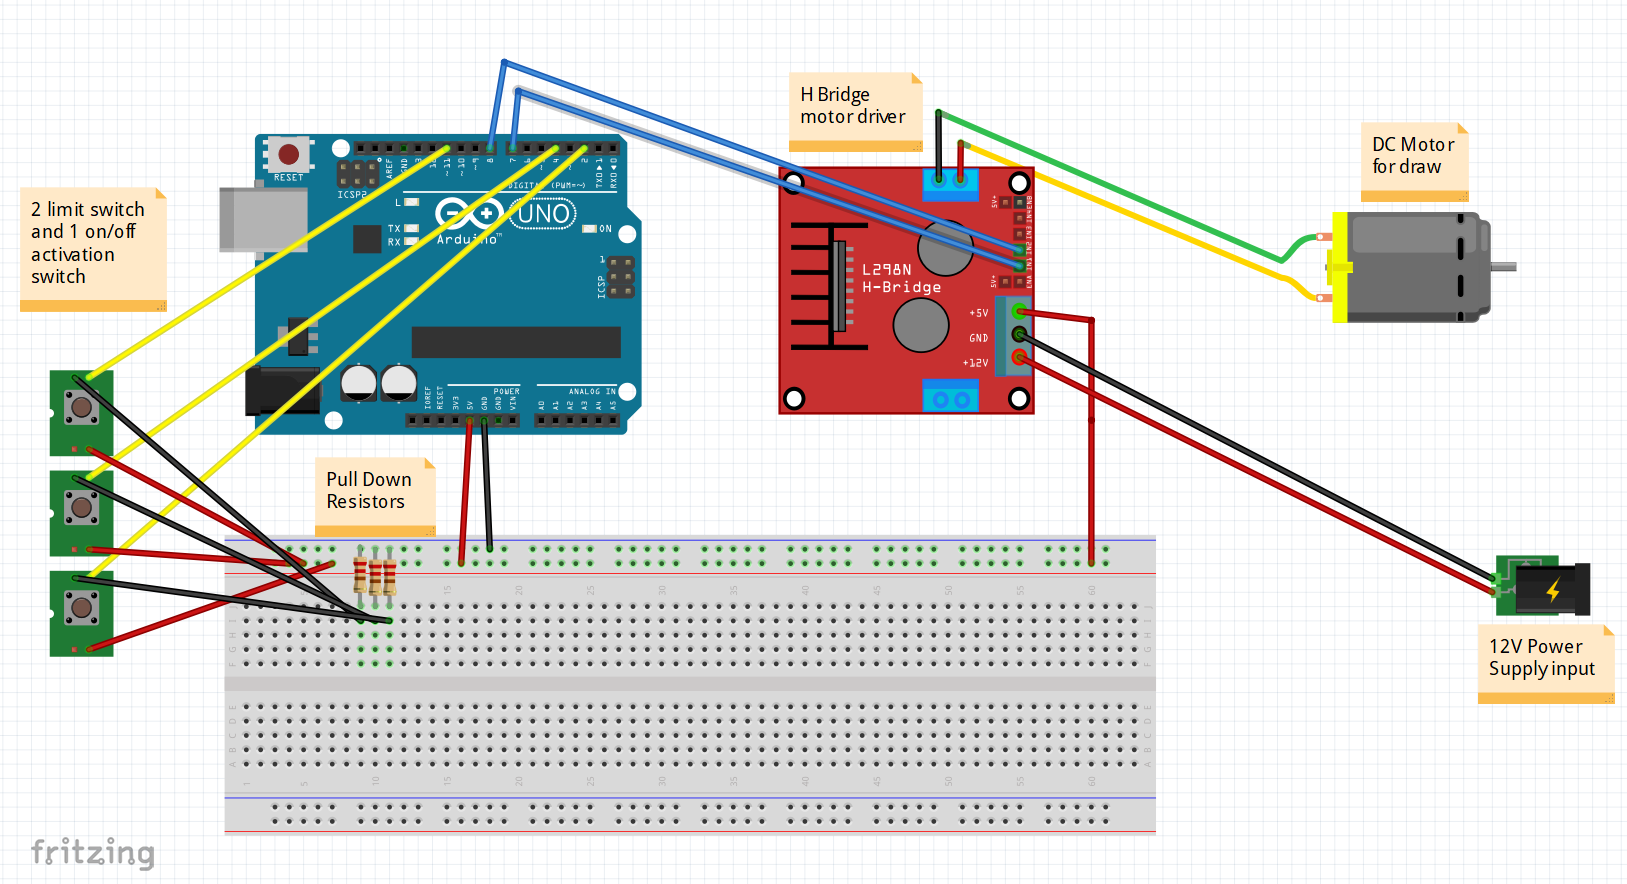 Pleasant Stopping Starting Dc Motor With Limit Switches And On Off Button Wiring Cloud Eachirenstrafr09Org